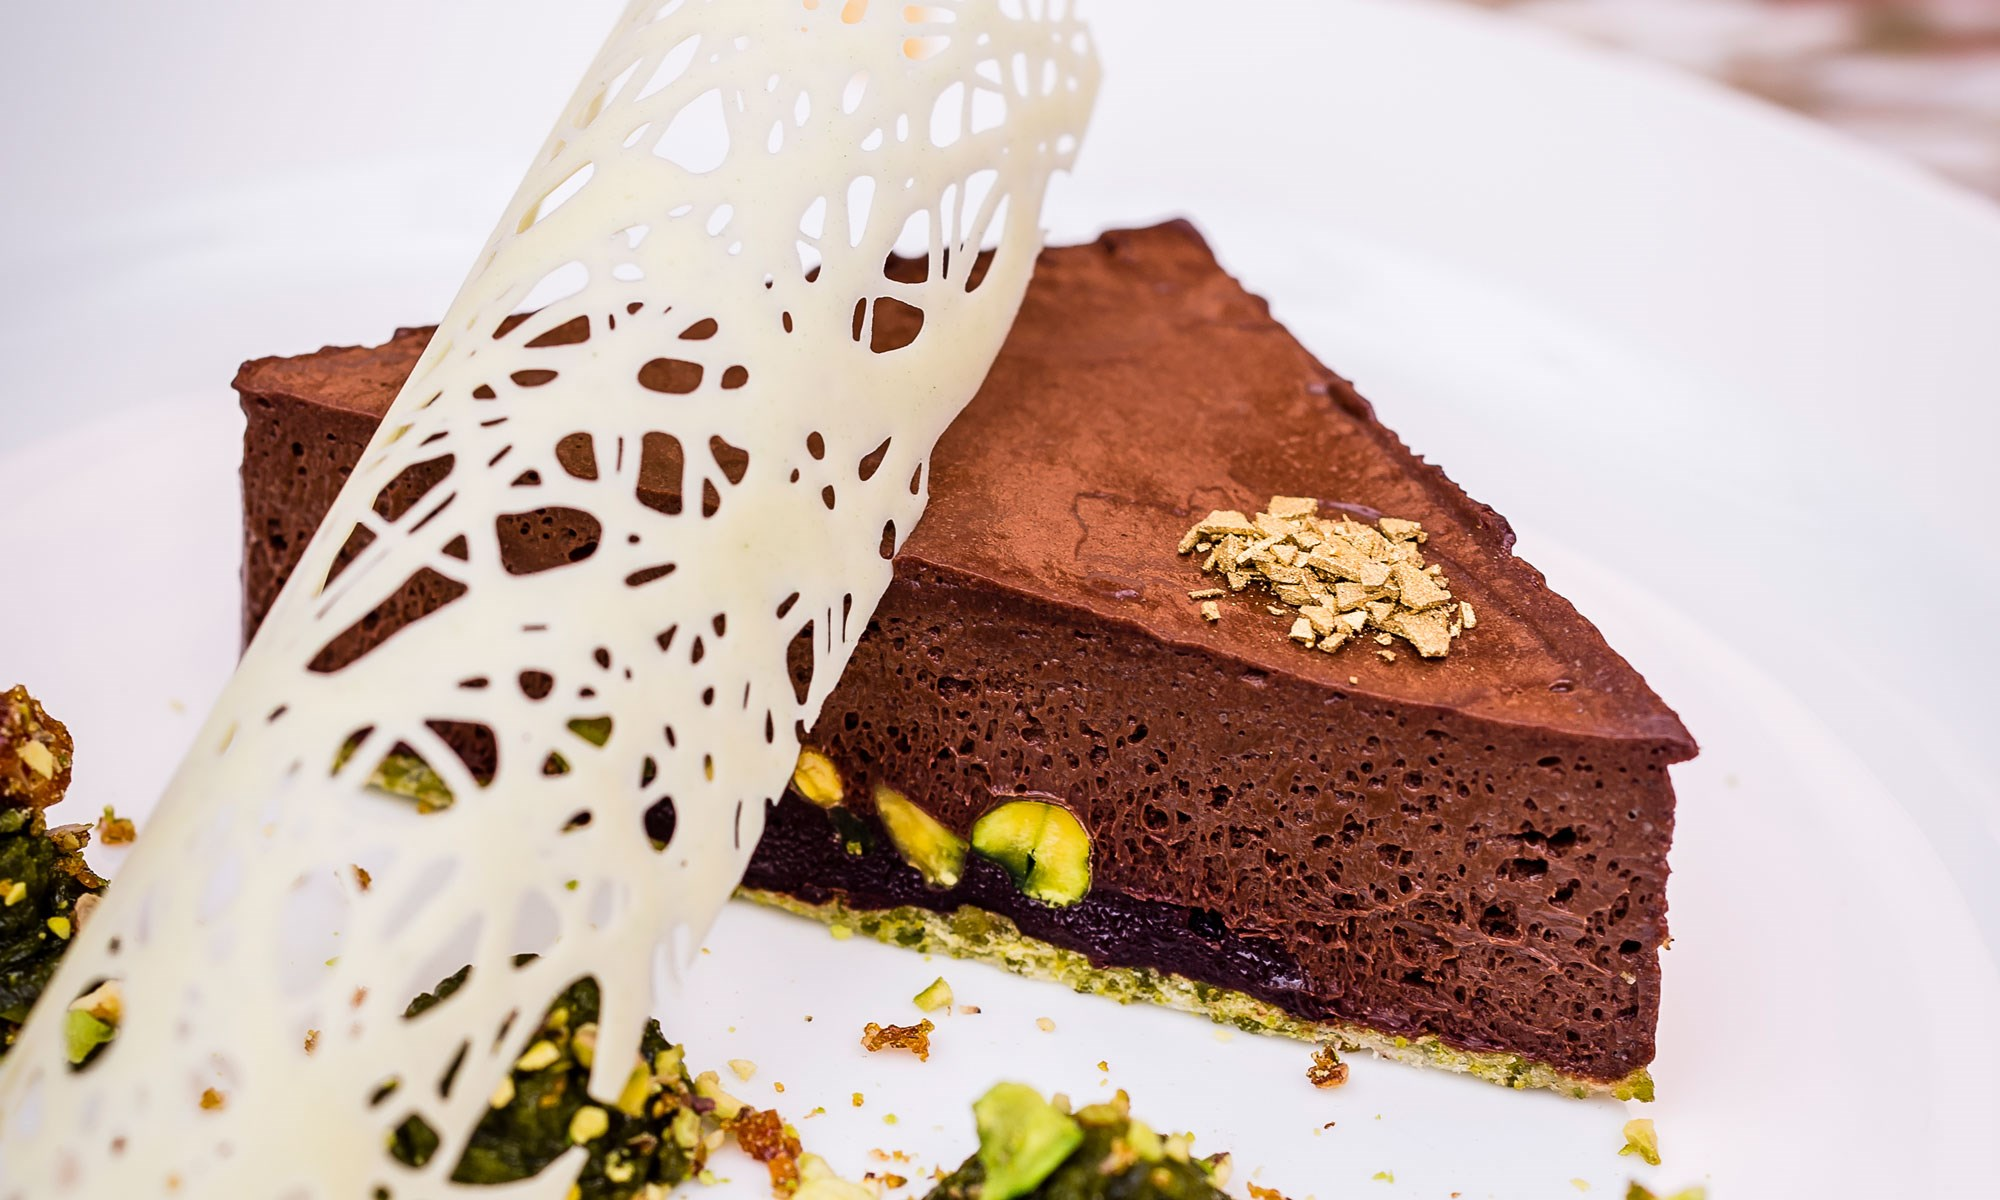 daphnes amedei chocolate mousse with pistachio by paul winch furness